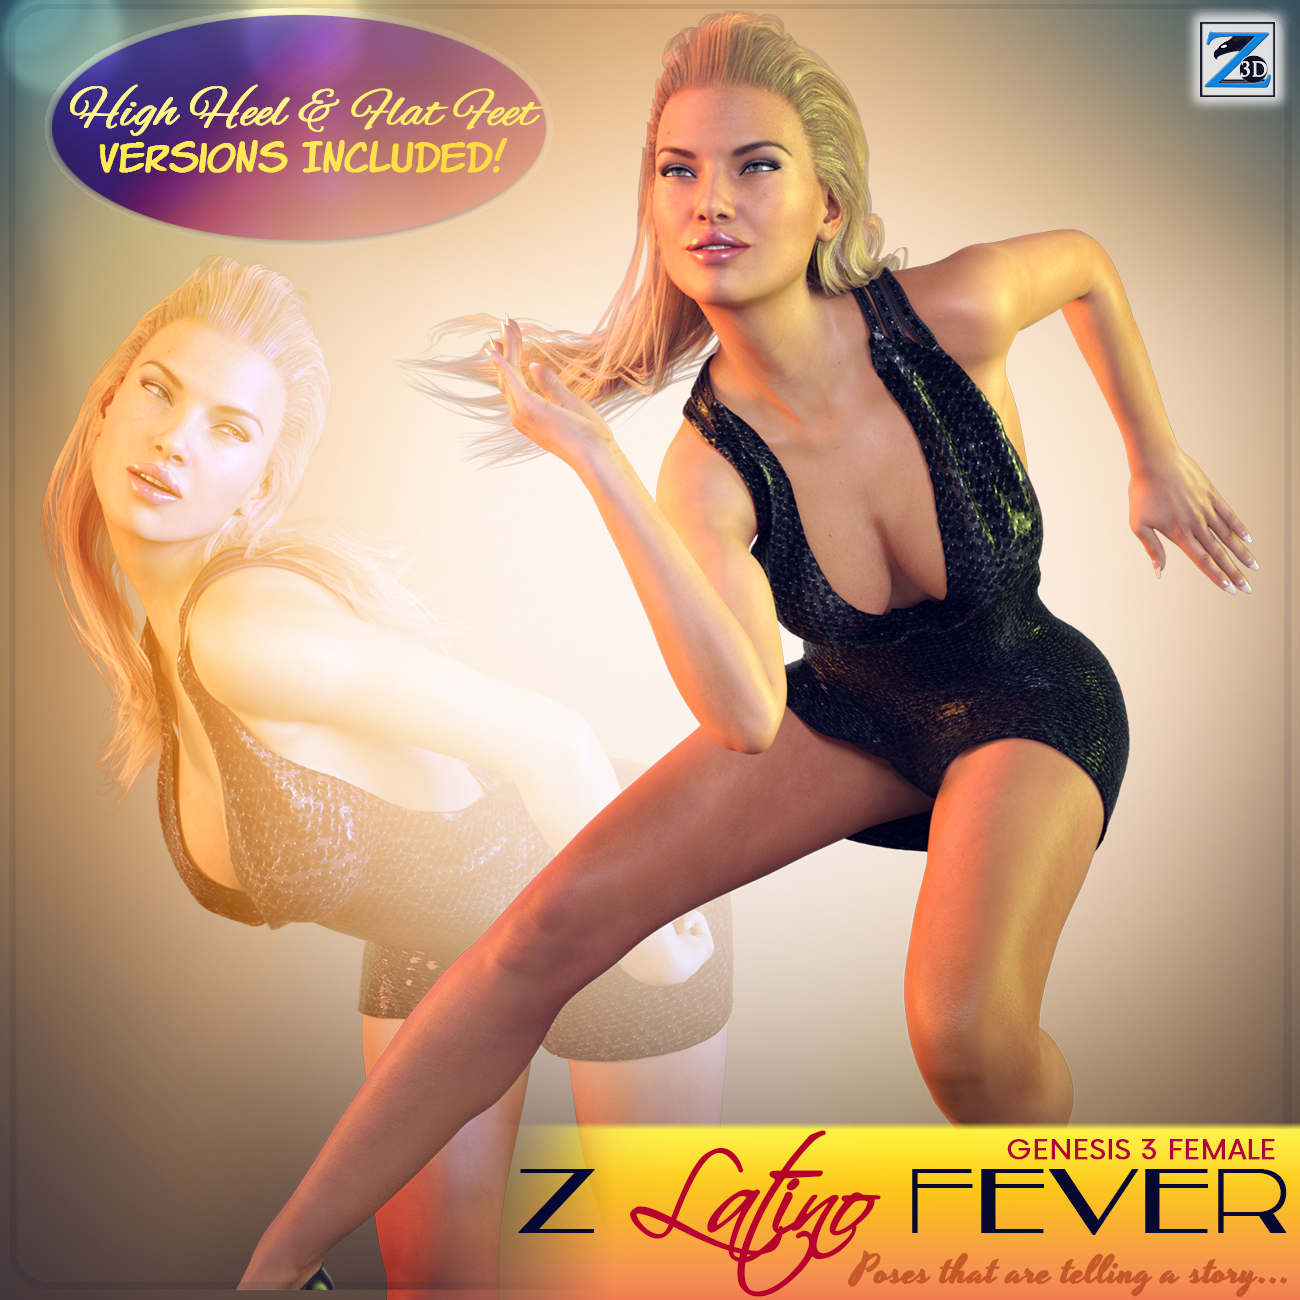 Z Latino Fever - Poses for the Genesis 3 Female(s)